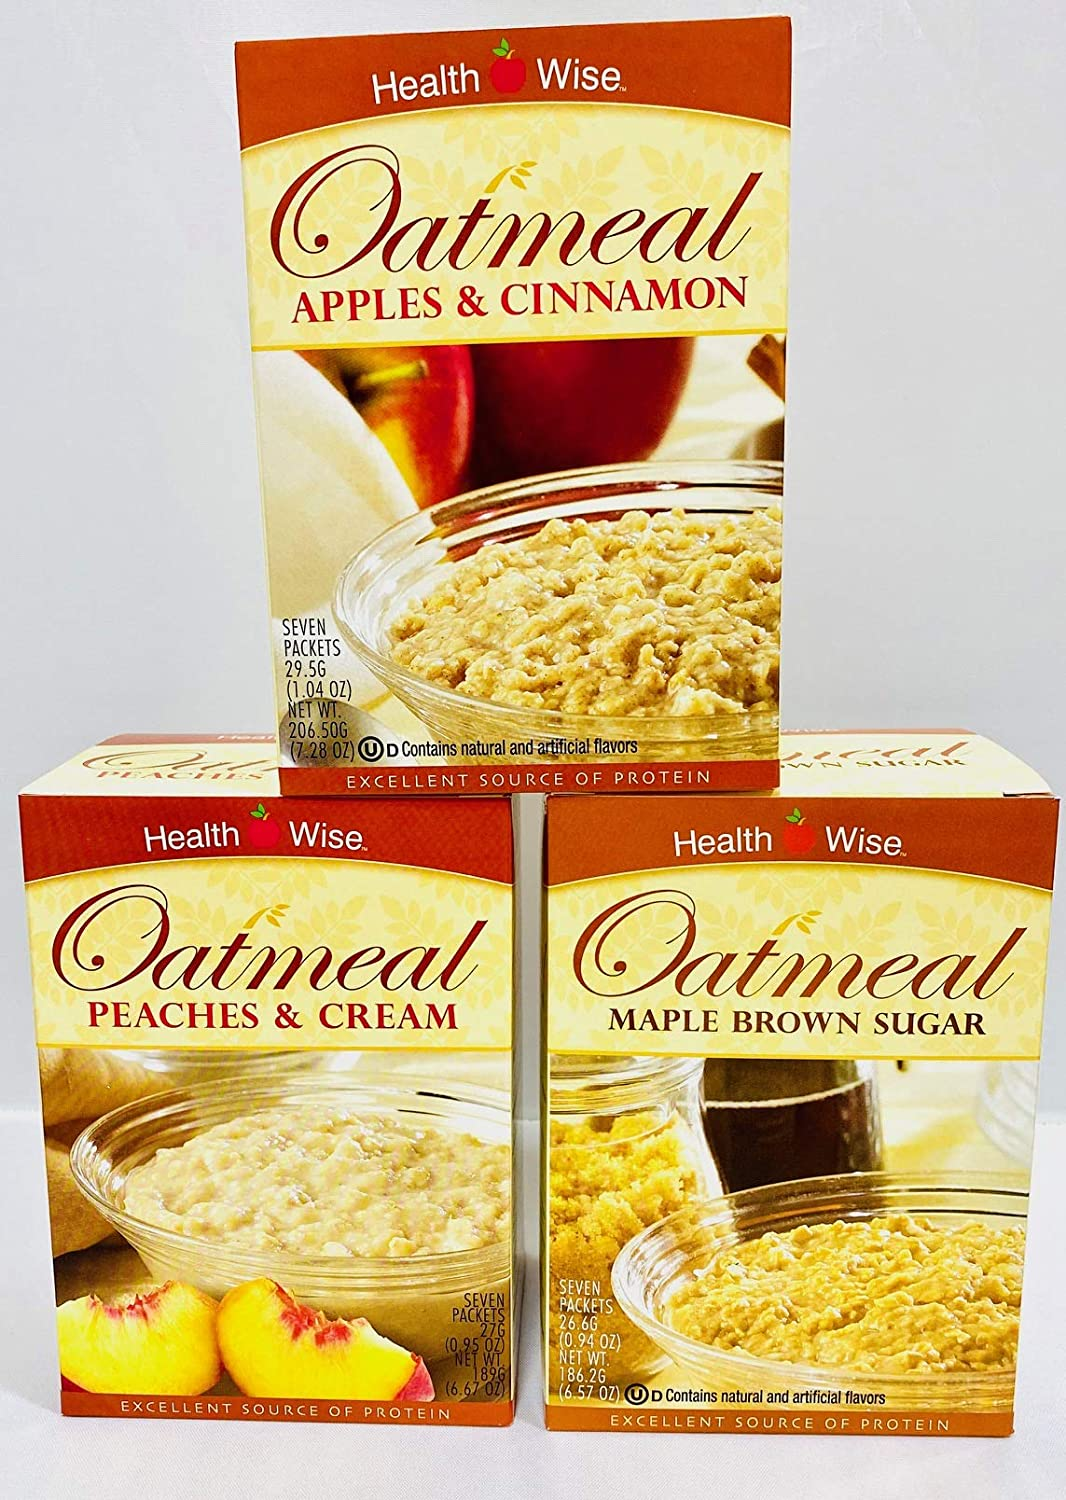 Healthwise - Apple and Cinnamon , Peaches and Cream , Maple Brown Sugar - High Protein Oatmeal Diet Starter Pack - Low in Calories - Low in Carbohydrates - Low in Sugar - 3 Boxes